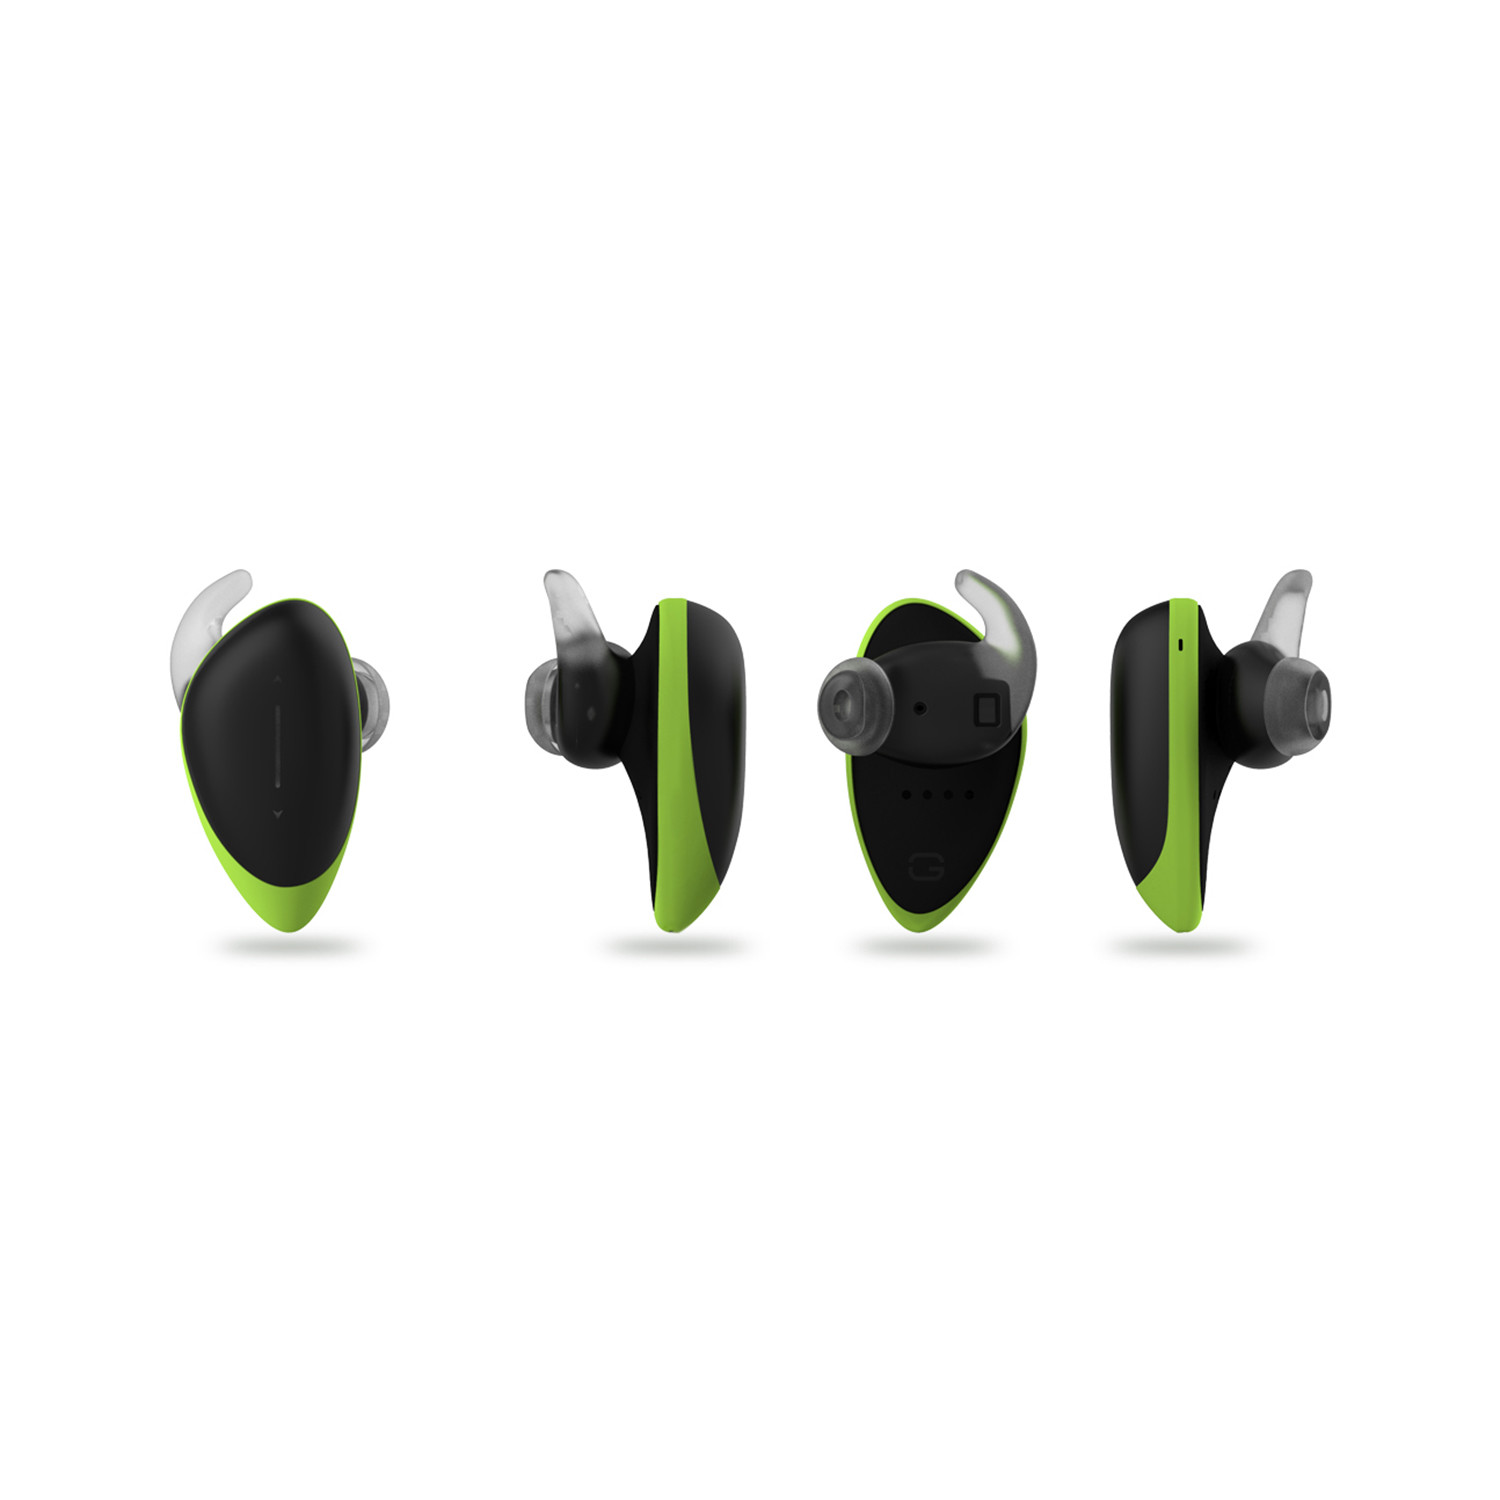 Noise Canceling Earphone Headphones With Microphone Stereo B Sport Hands Head Phone For Mp4 Player